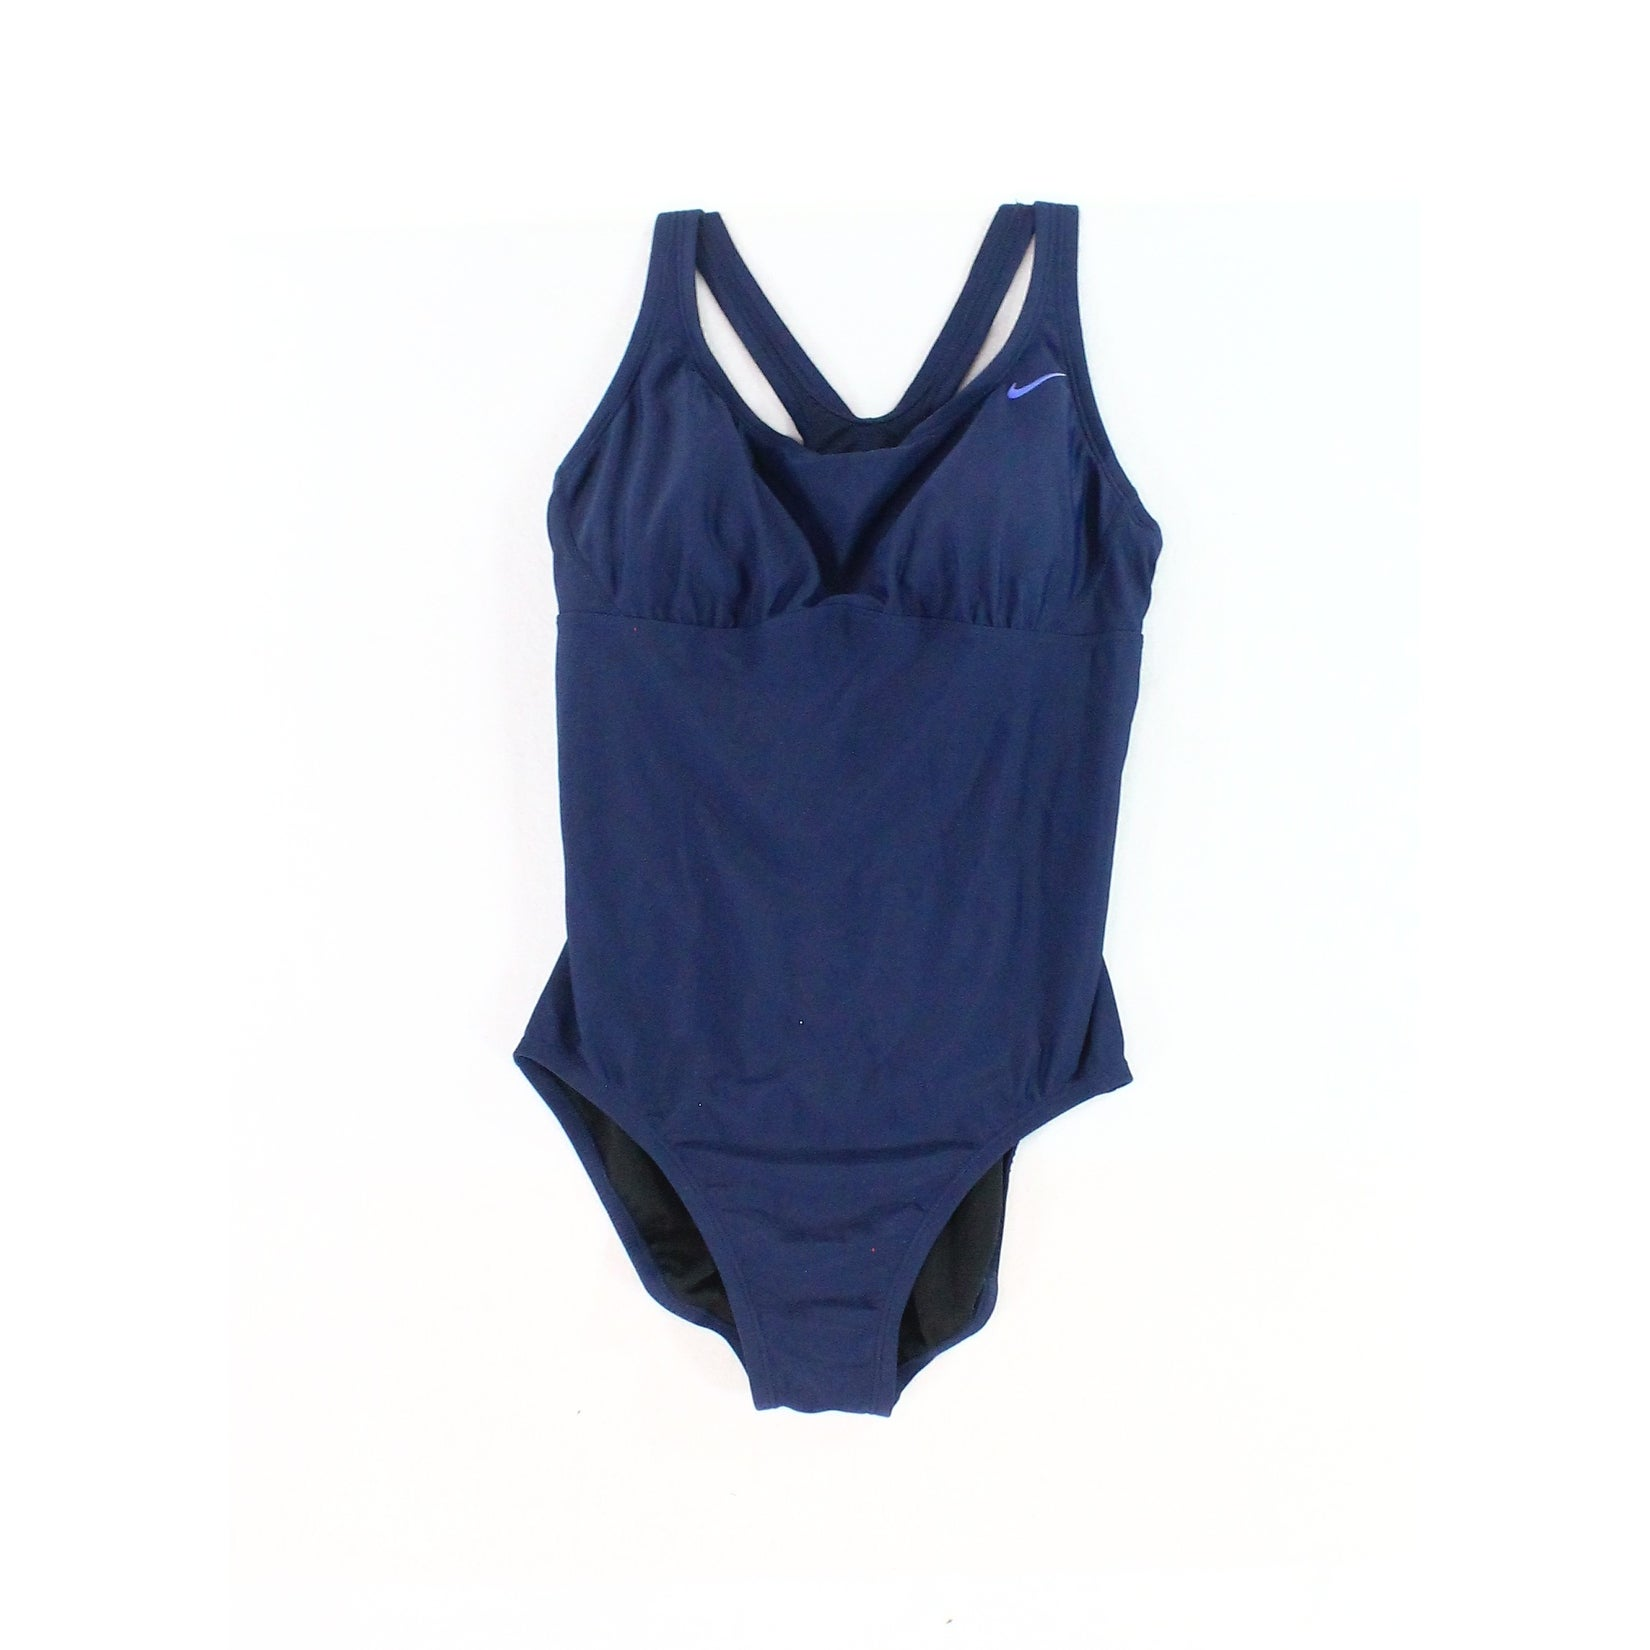 8d5d875cc54 Nike Swimwear | Find Great Women's Clothing Deals Shopping at Overstock